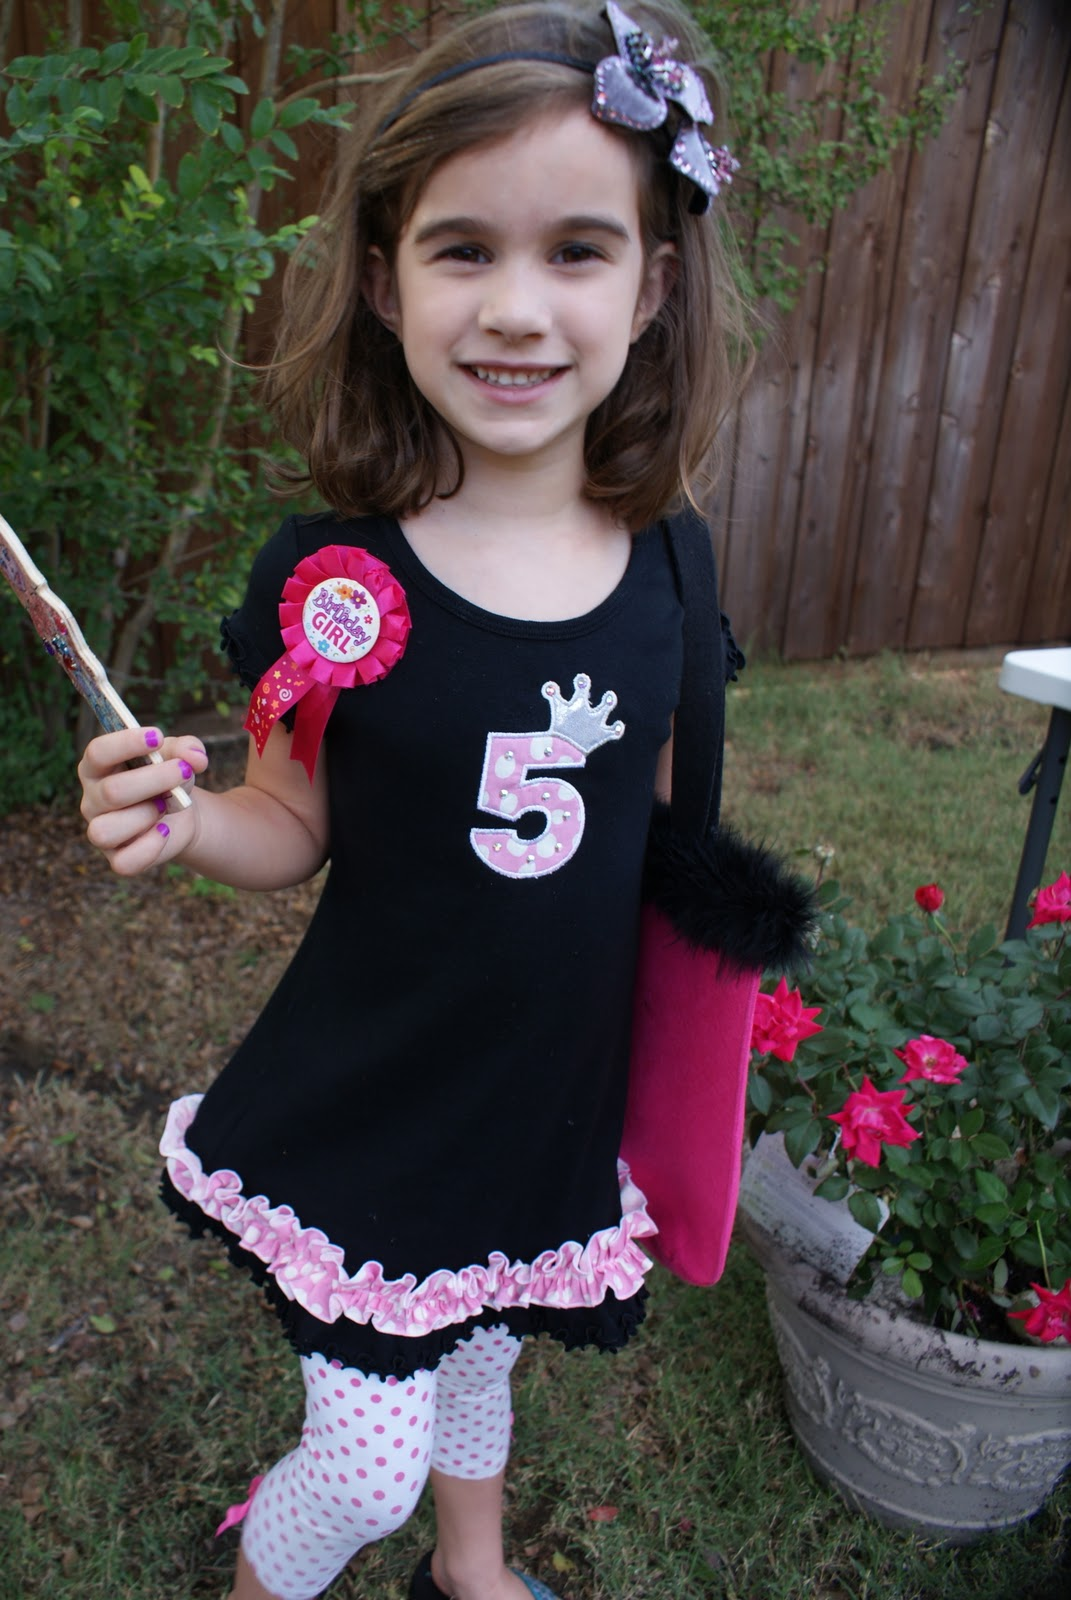 The Dixon Daily: My Baby Girl Turned Into a 5 Year Old  The Dixon Daily...